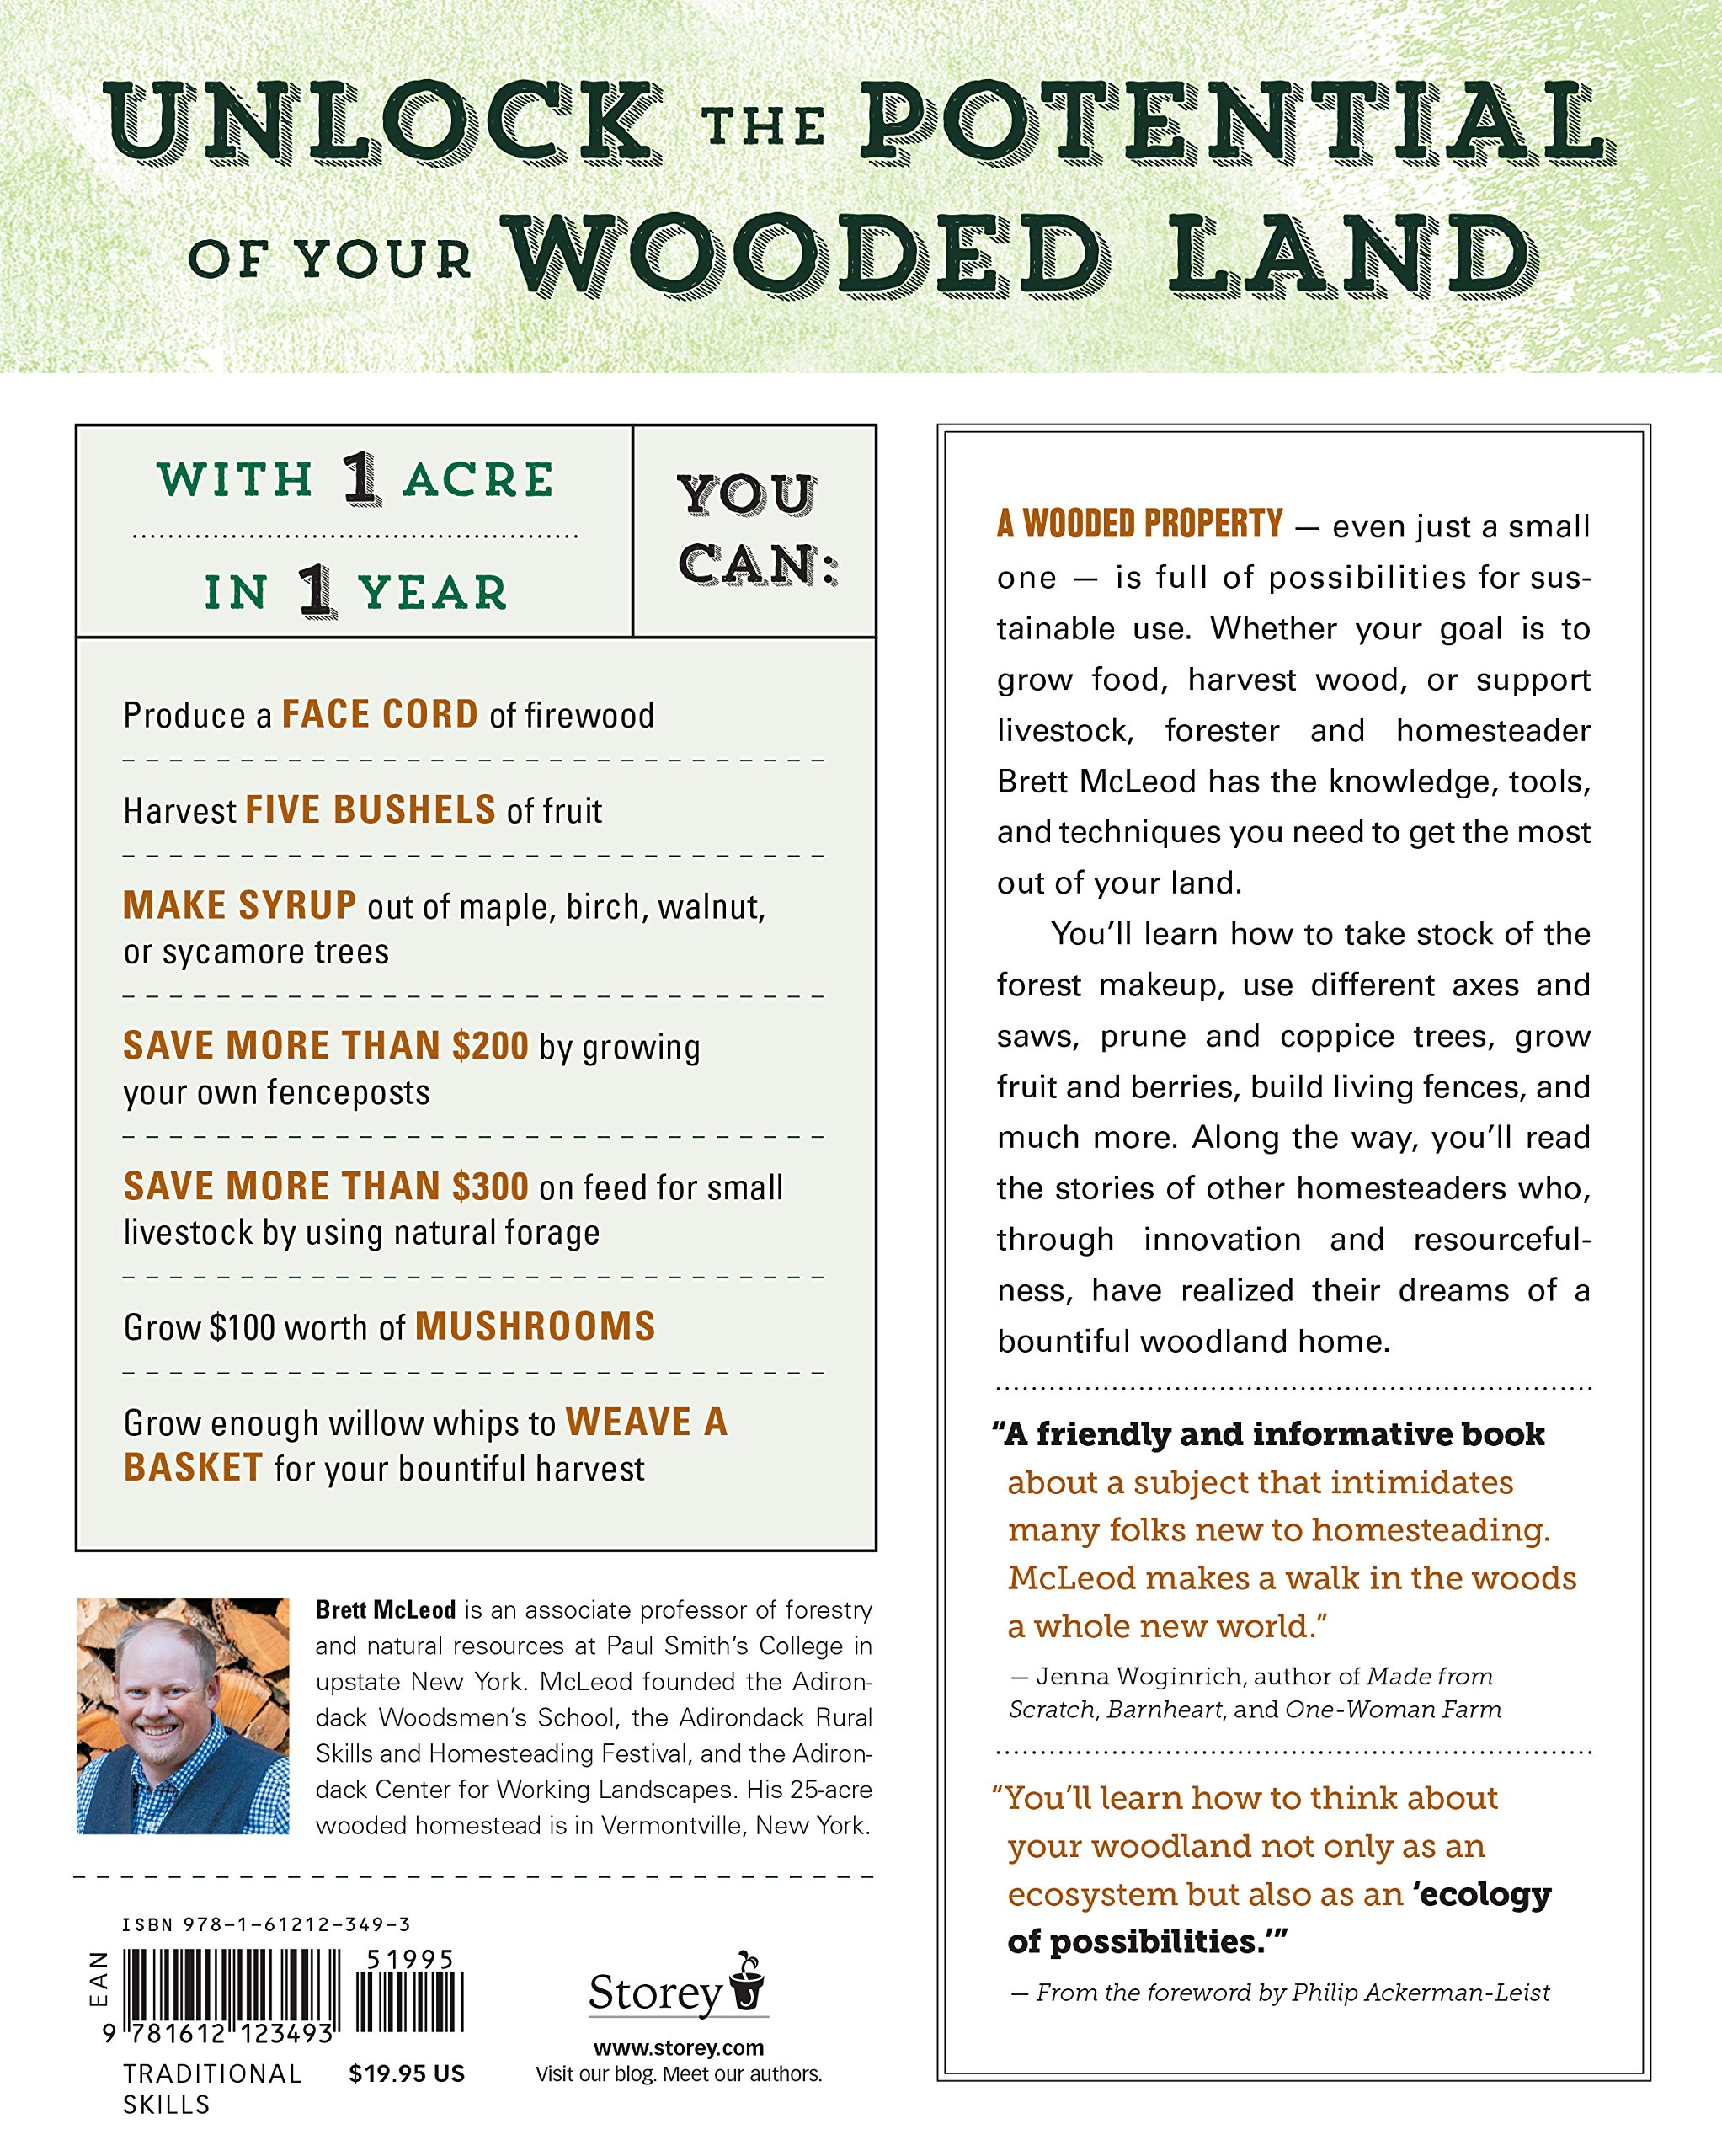 The Woodland Homestead: How to Make Your Land More Productive and Live More Self-Sufficiently in the Woods